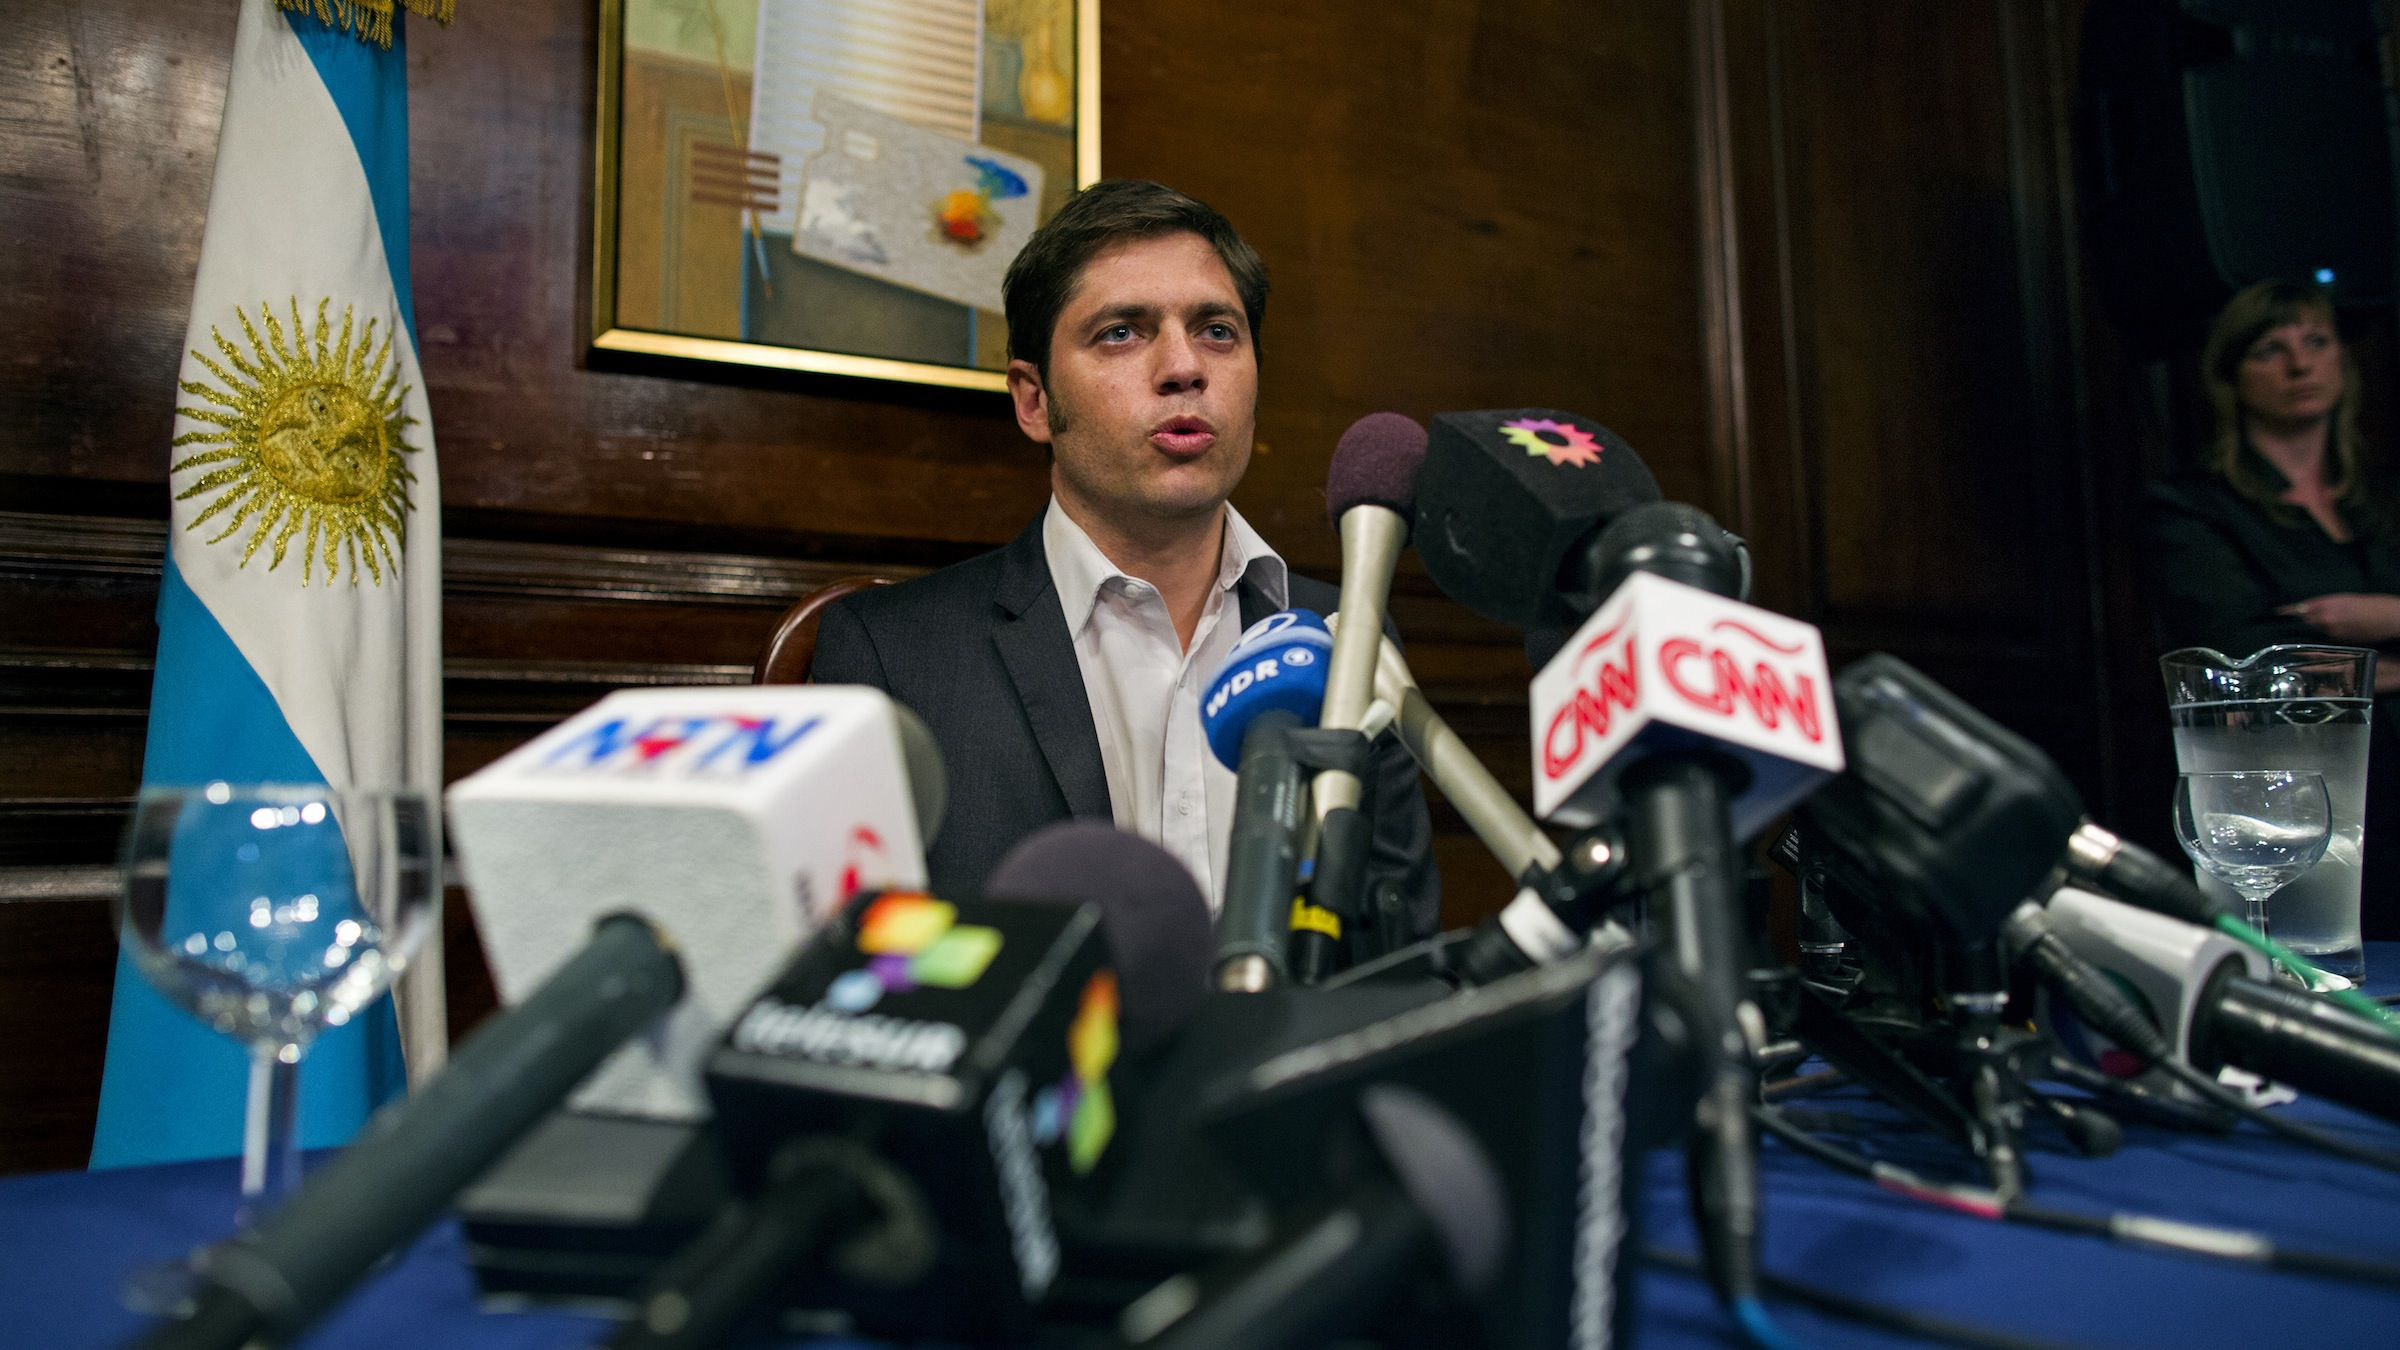 Axel Kicillof, Argentina's economy minister, addresses member of the news media after a negotiation session Wednesday July 30, 2014, in New York. Argentina officials and U.S. bondholders met for the first time in hopes of preventing an Argentine default. (AP Photo/Craig Ruttle)